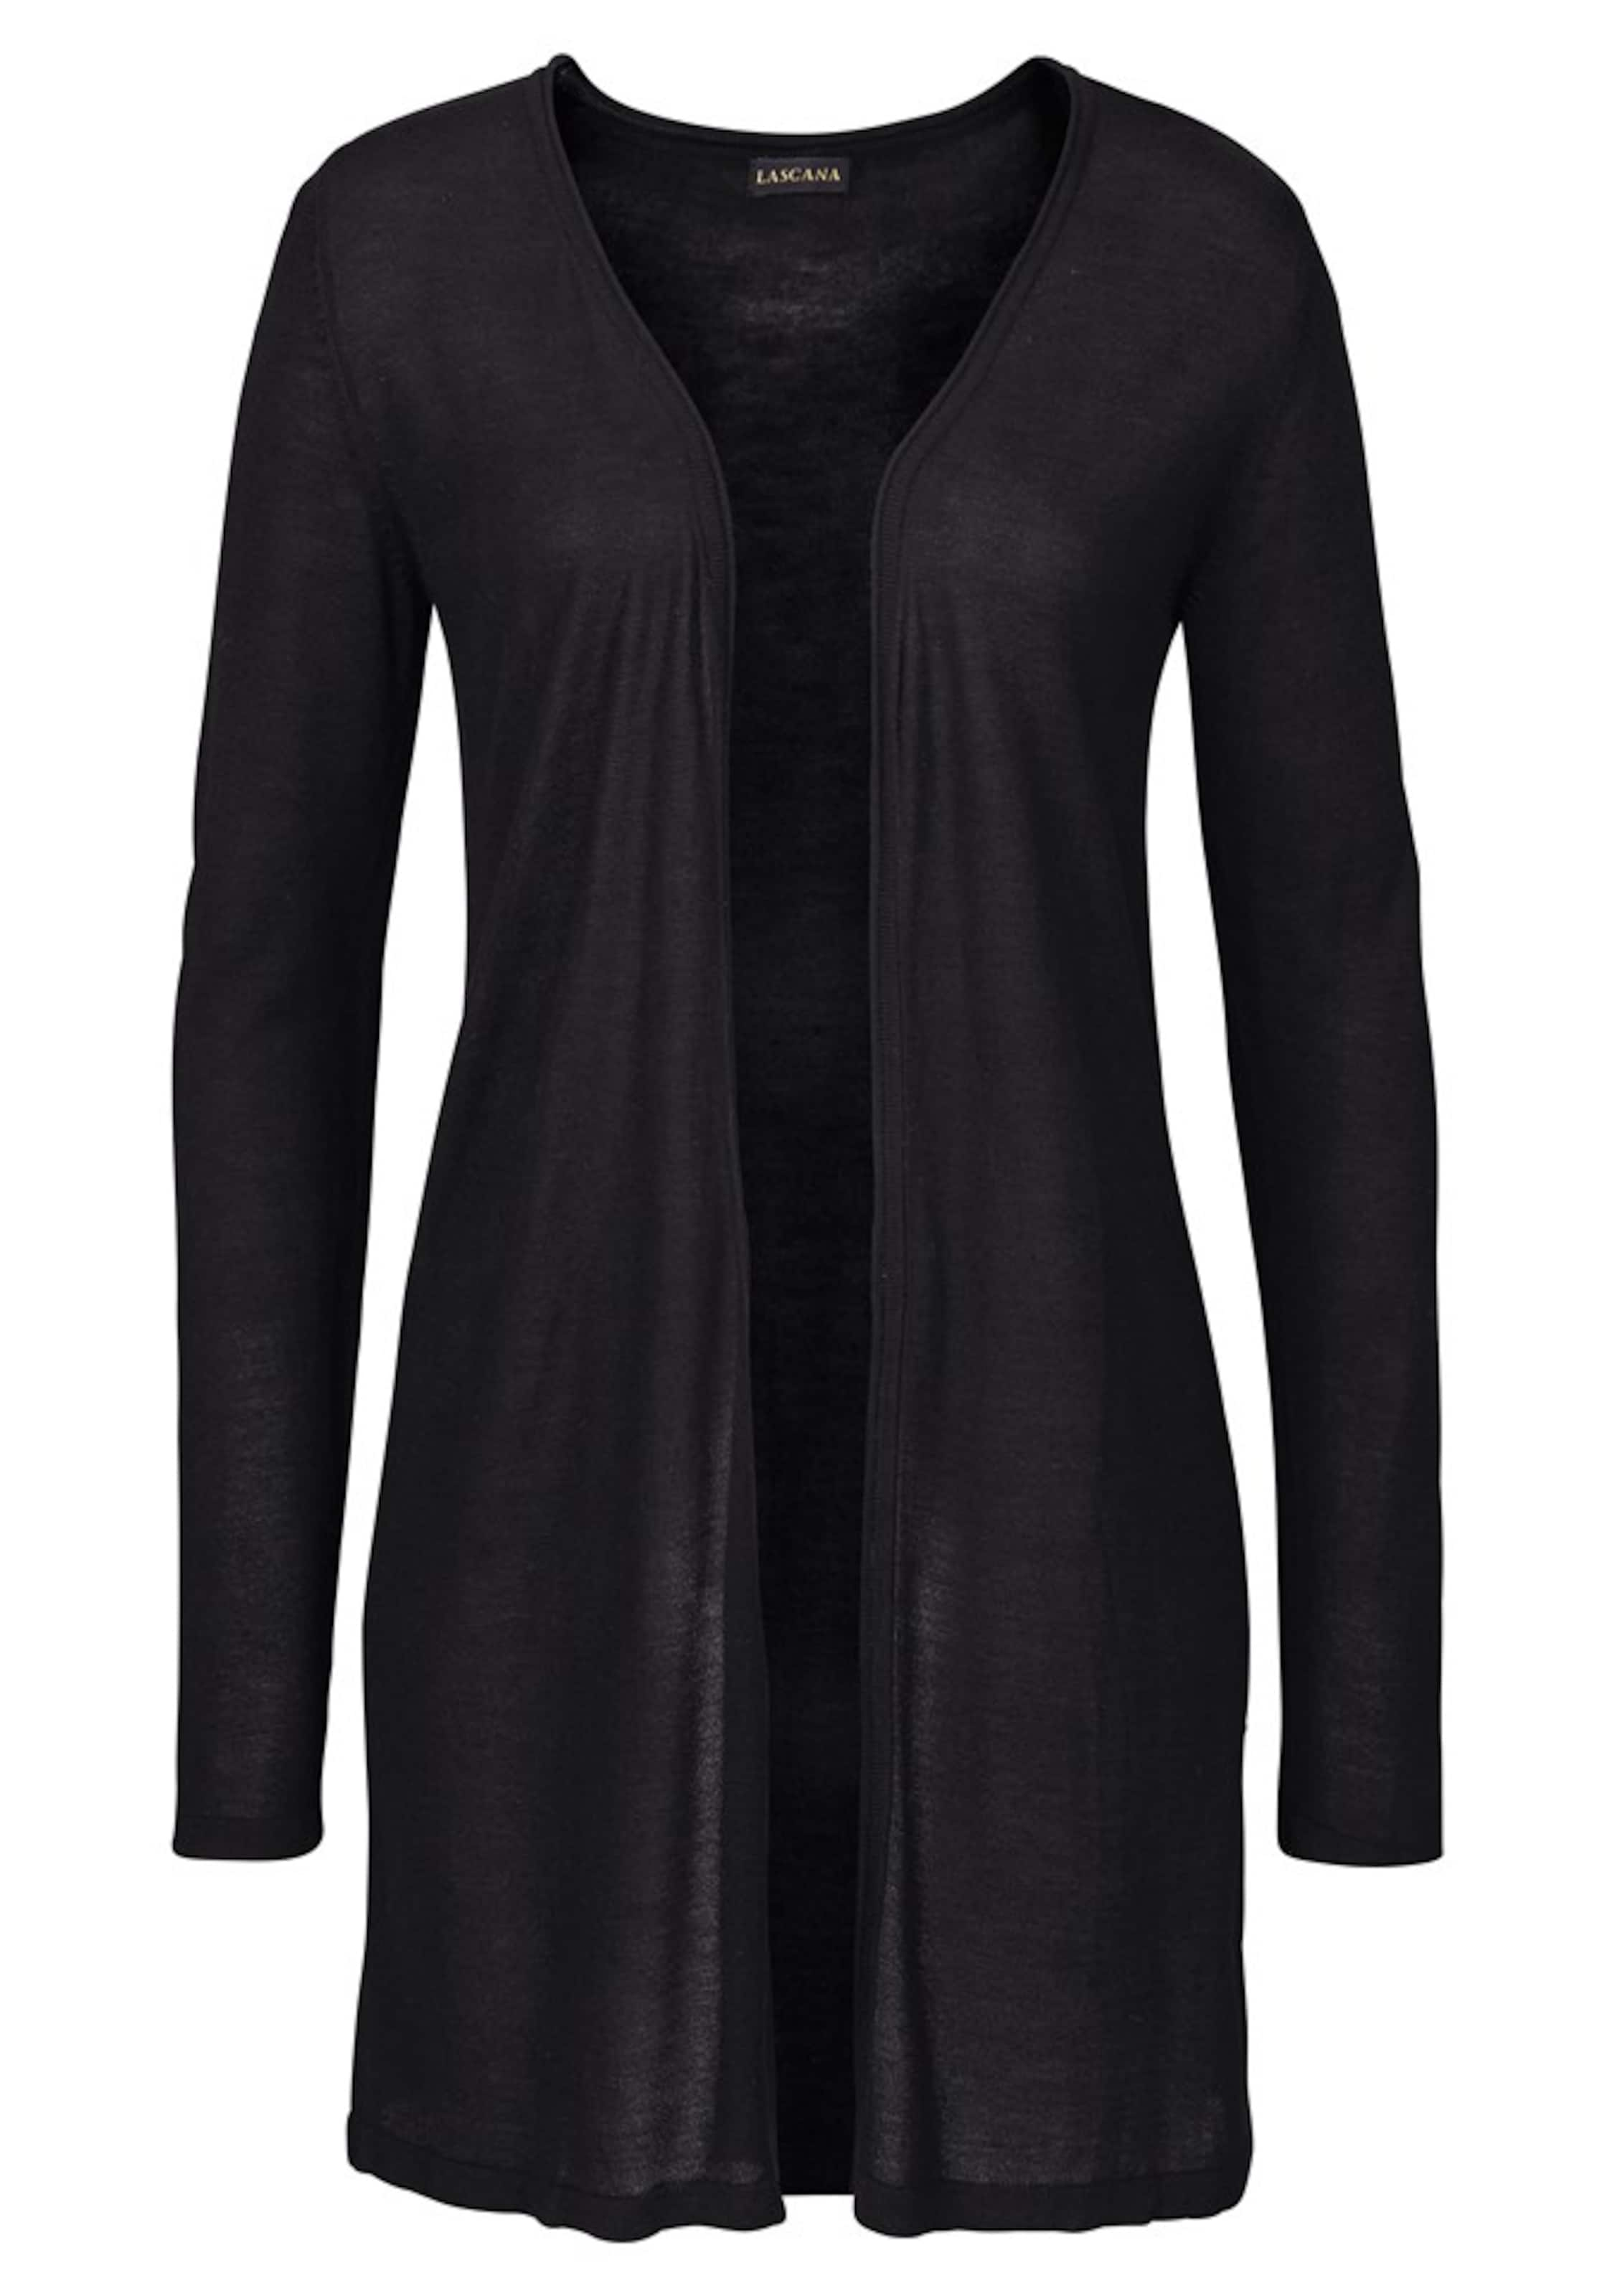 In Schwarz In Lascana Strickjacke Strickjacke Schwarz In Lascana Strickjacke Lascana 8w0NnOkPX